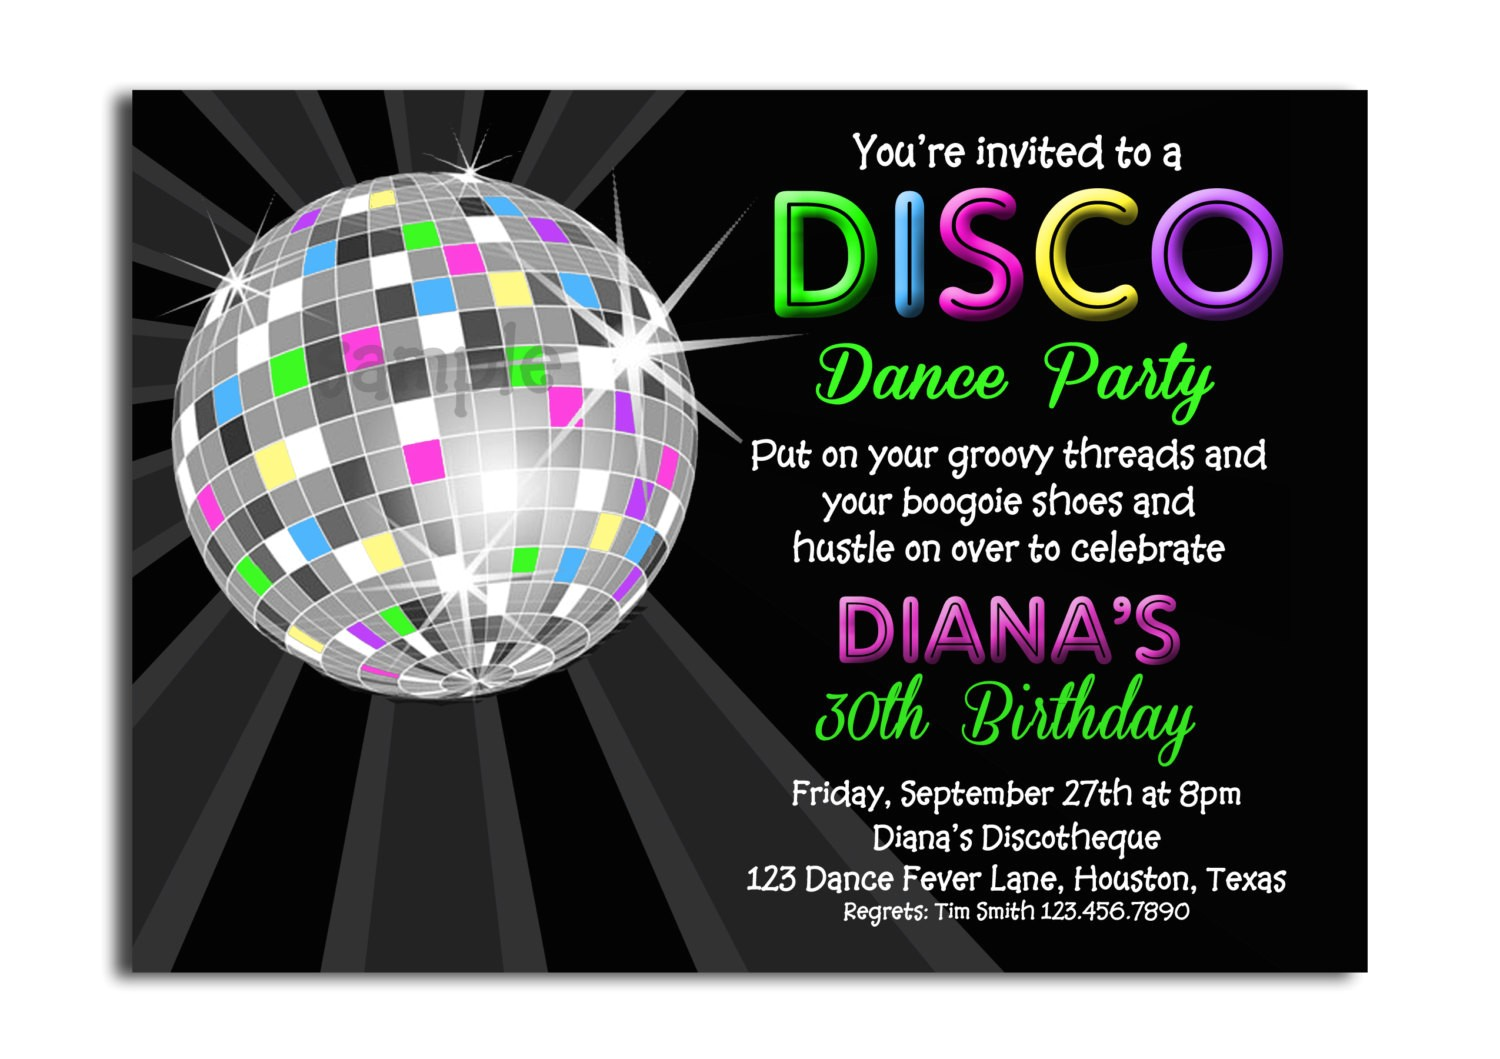 disco party invitations with some beautification for your party invitation templates to serve captivating environment 1